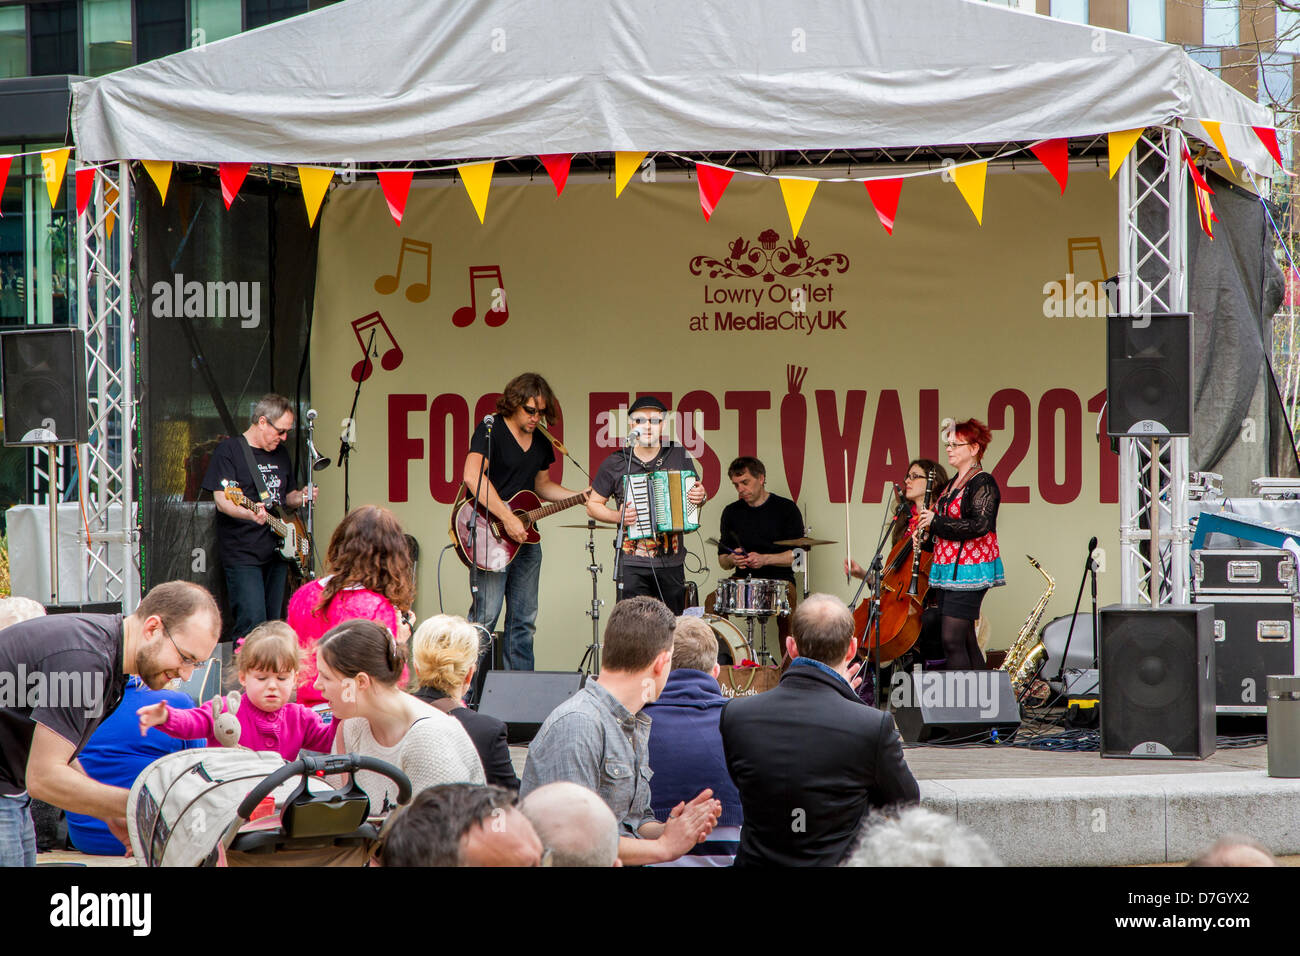 Salford, UK. 5th May 2013. Folk band Lazlo Baby perform at the first ever Lowry Outlet Food Festival 2013 at MediaCity - Stock Image